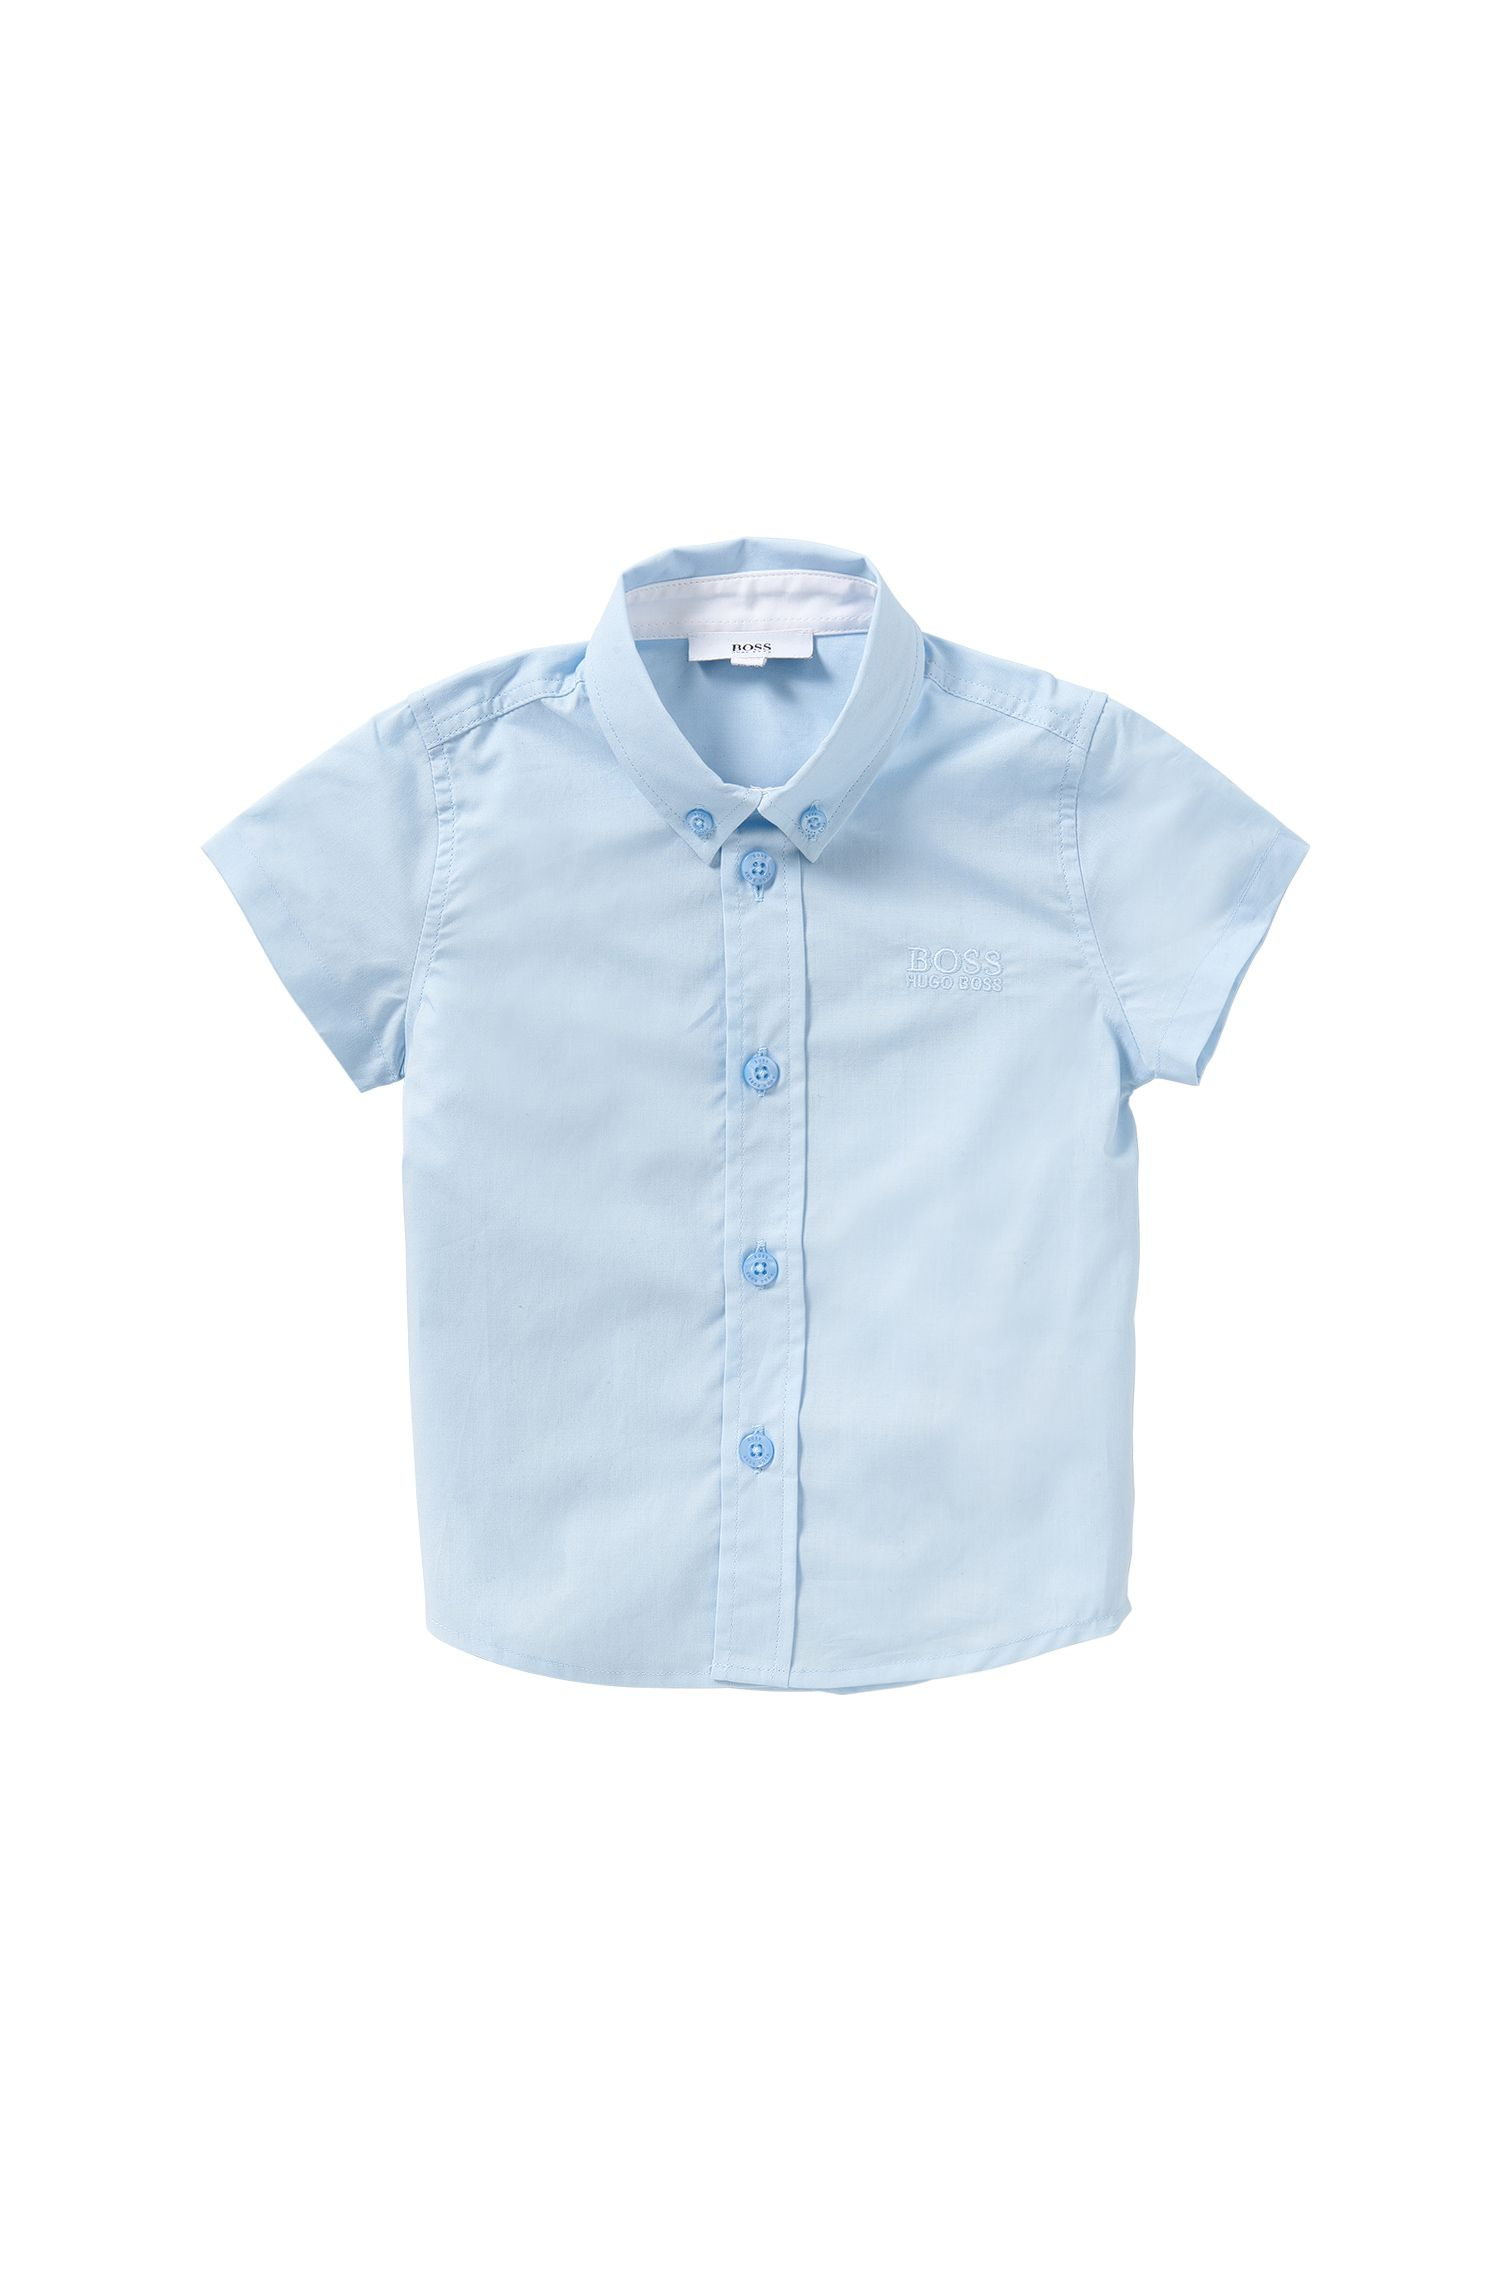 'J05463' | Toddler Cotton Button Down Shirt